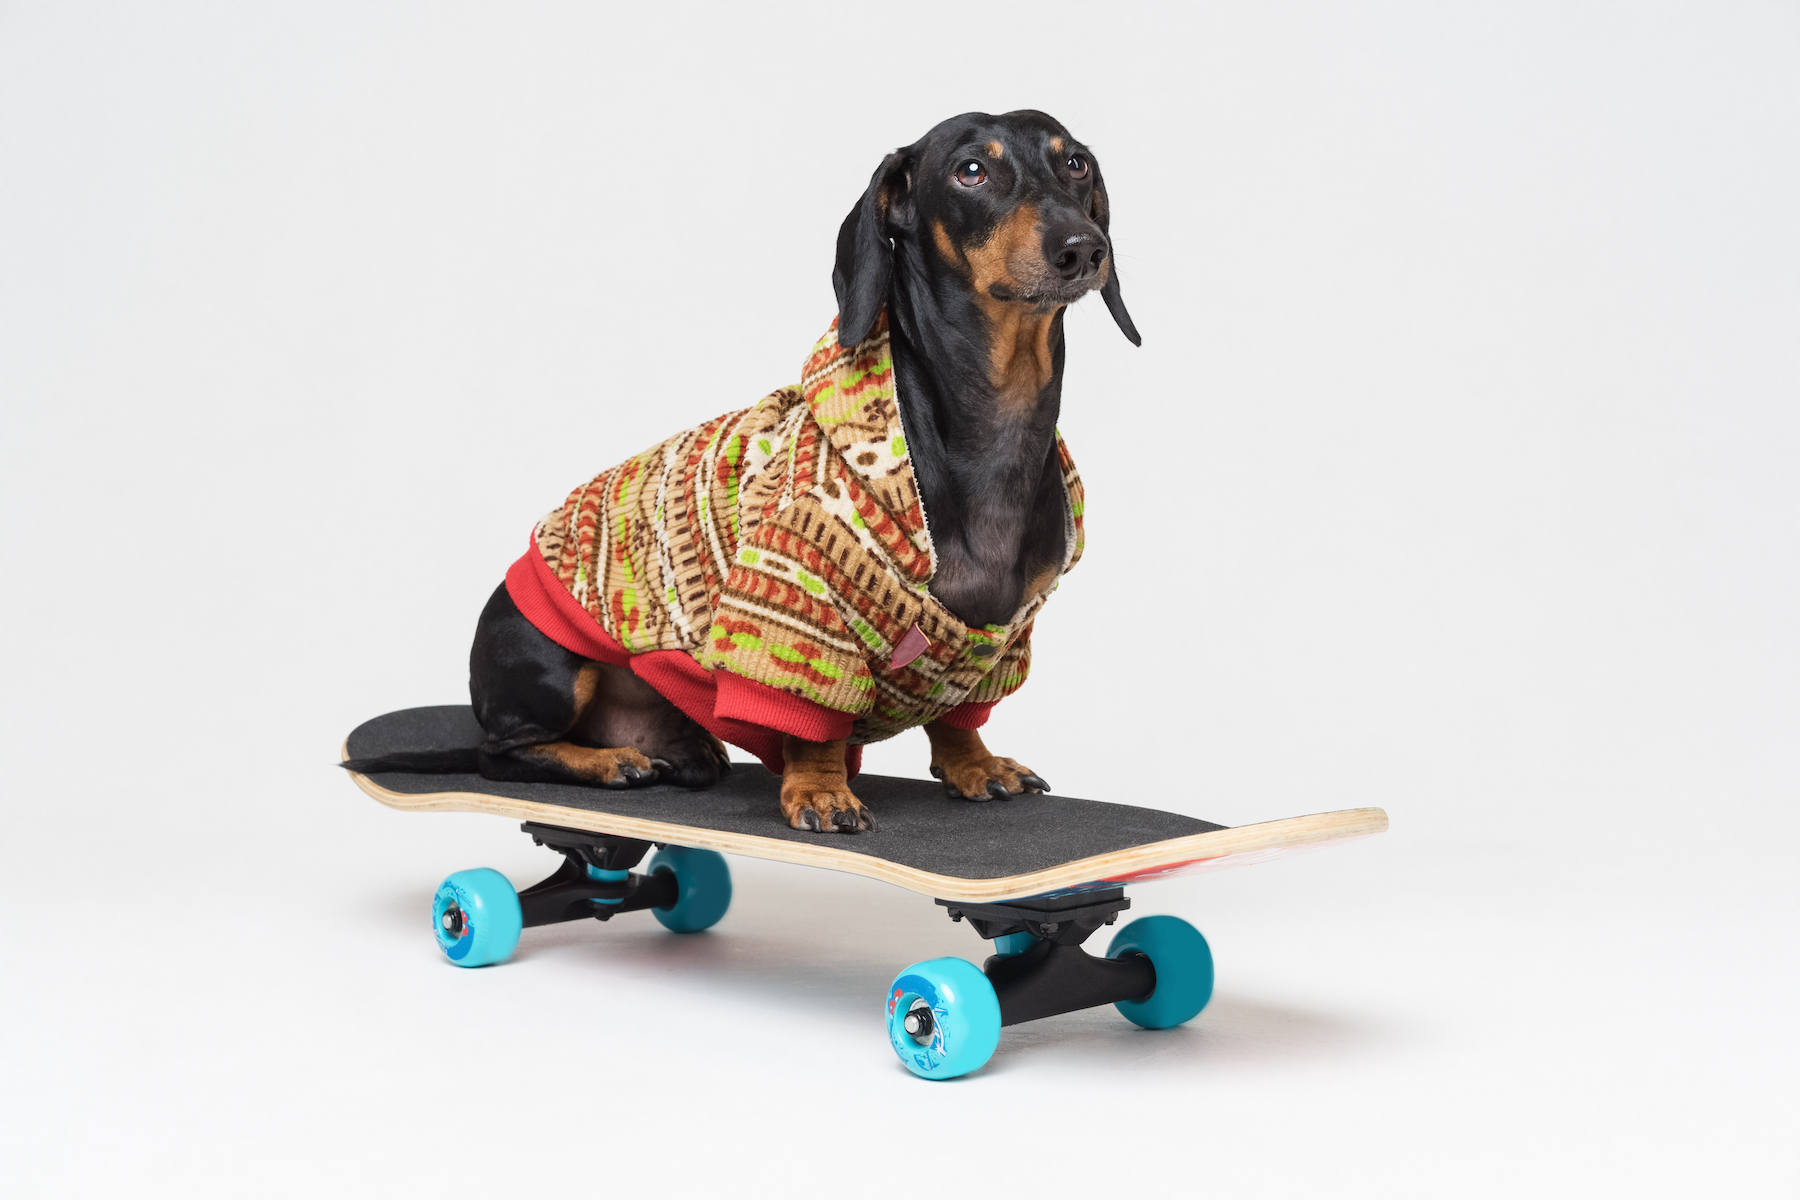 Canva - dog breed Dachshund, black and tan, sits on skateboard,dressed in a color sweater, isolated on gray background. Skateboarding dog.